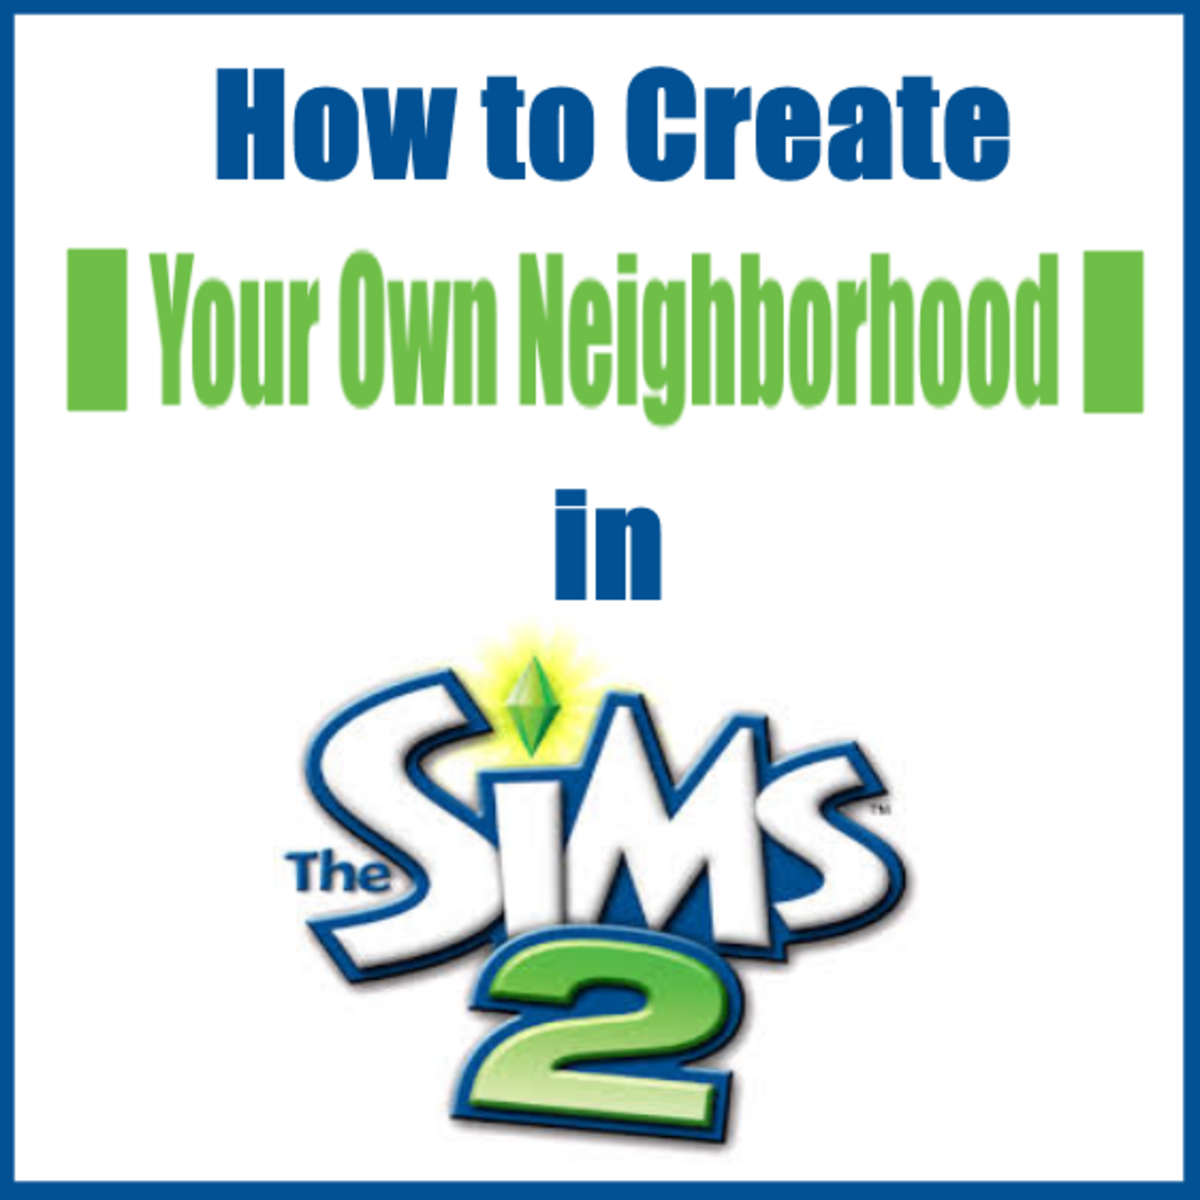 """How to Create Your Own Neighborhood in The Sims 2"""